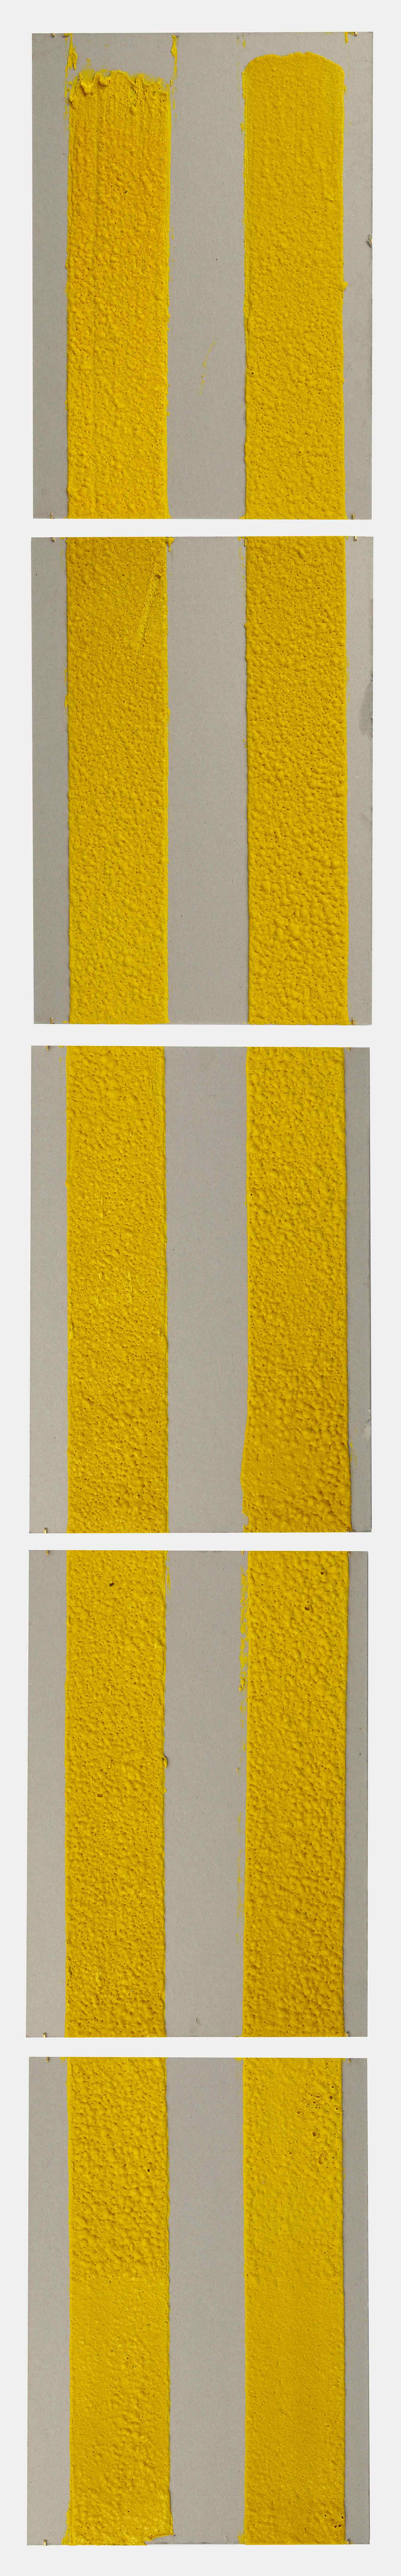 4in (section) (W), 2.27mm (T), Yellow, Double Yellow continuous, Manual marking, Lewis St, Btw Delancey St - Grand St,  2018  Set of 5 works Thermoplastic paint and reflective glass particles on grey boards 50 x 35 cm each